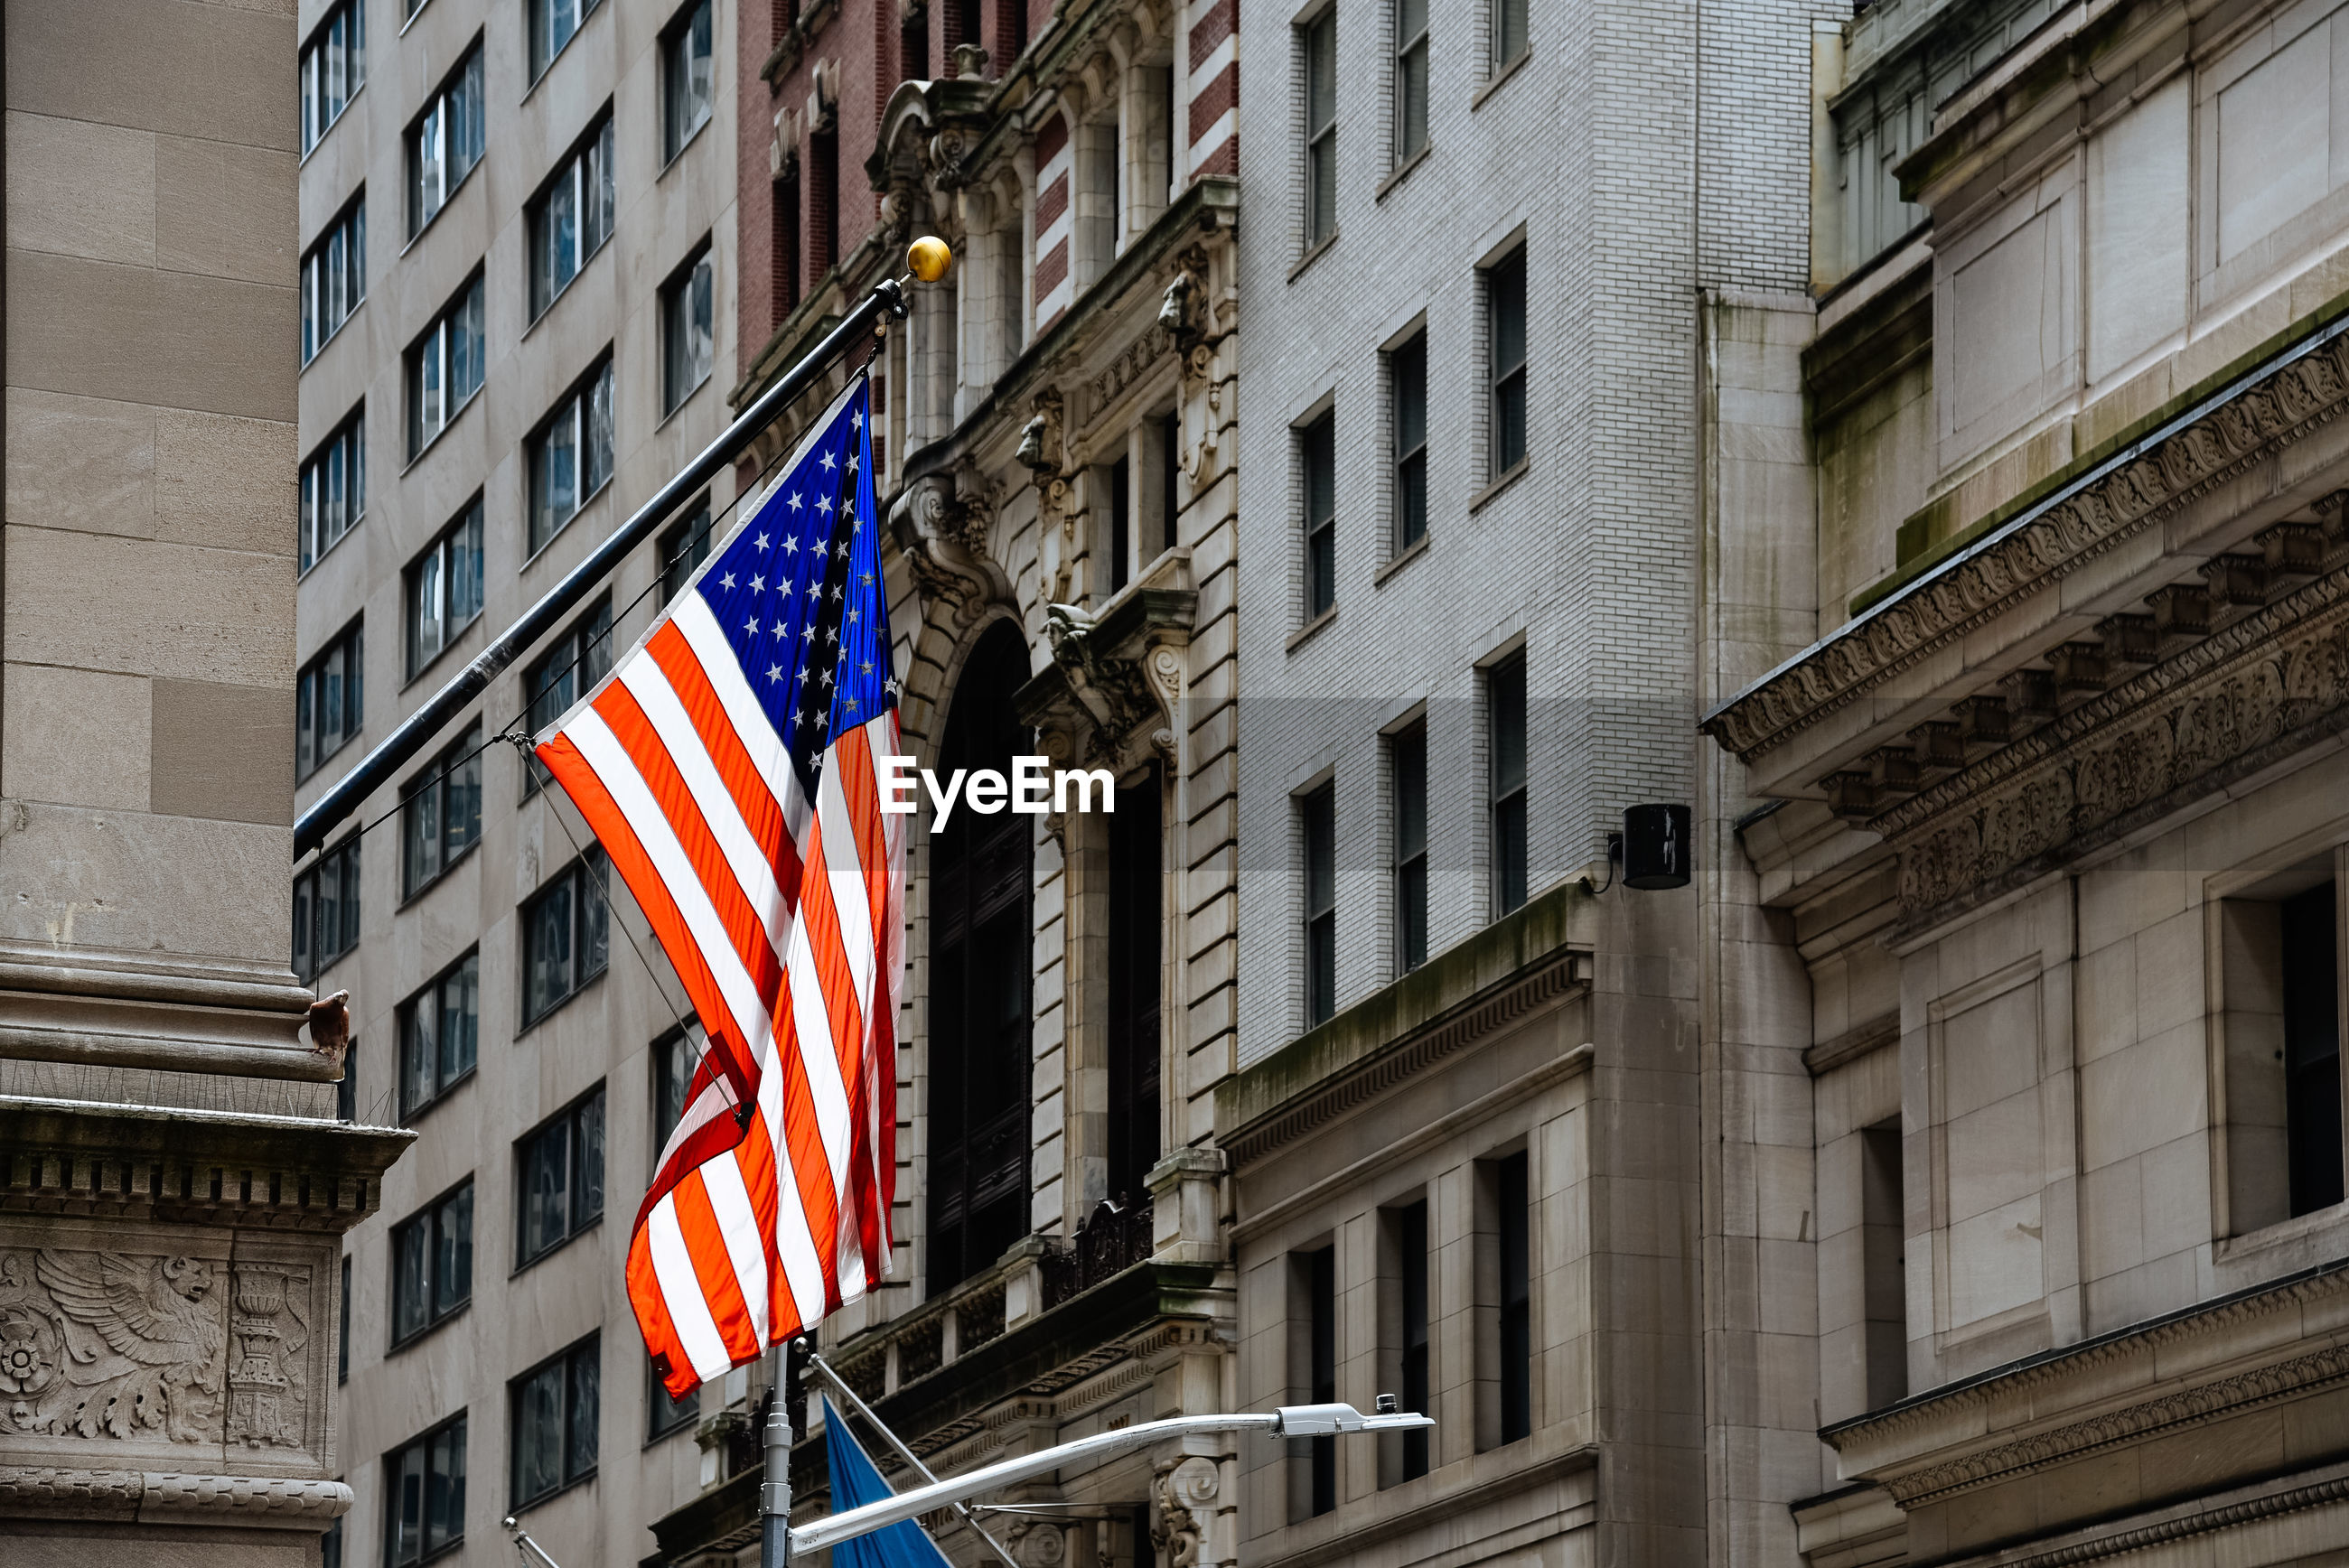 Low angle view of american flag amidst buildings in city